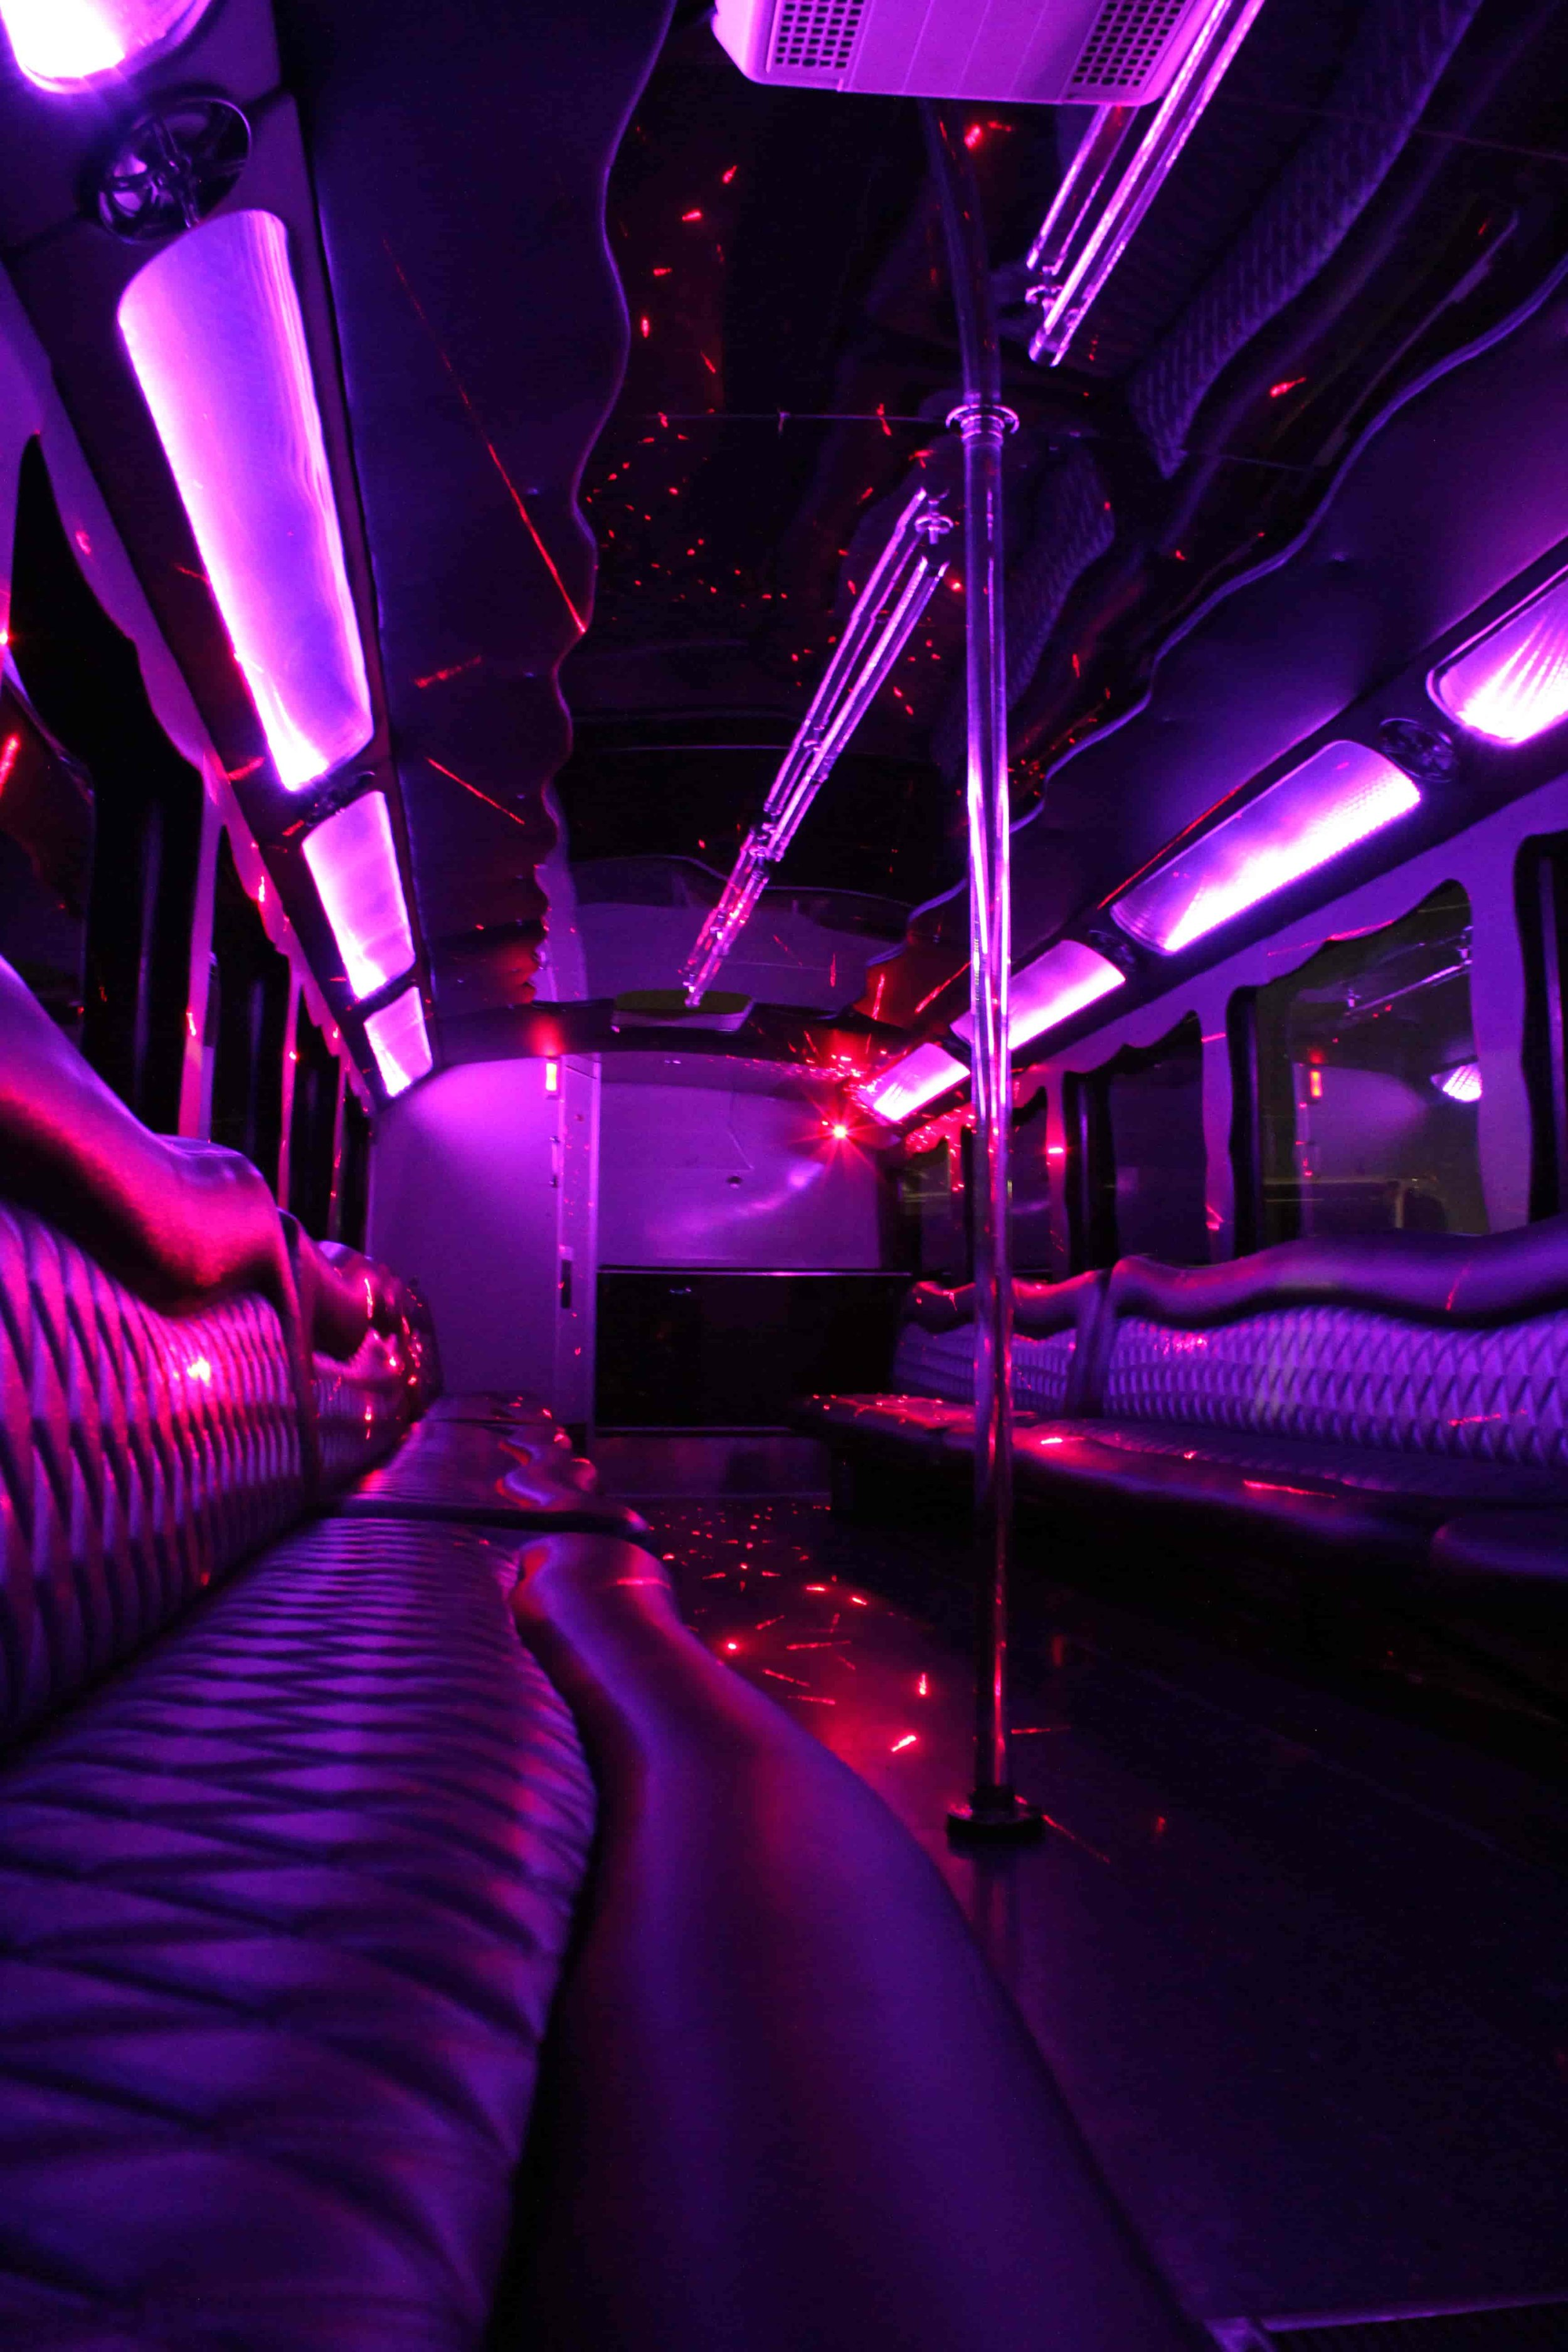 Long Seat Shot of 45 Passenger SD Bus with a Pink to Purple warmth-min.JPG